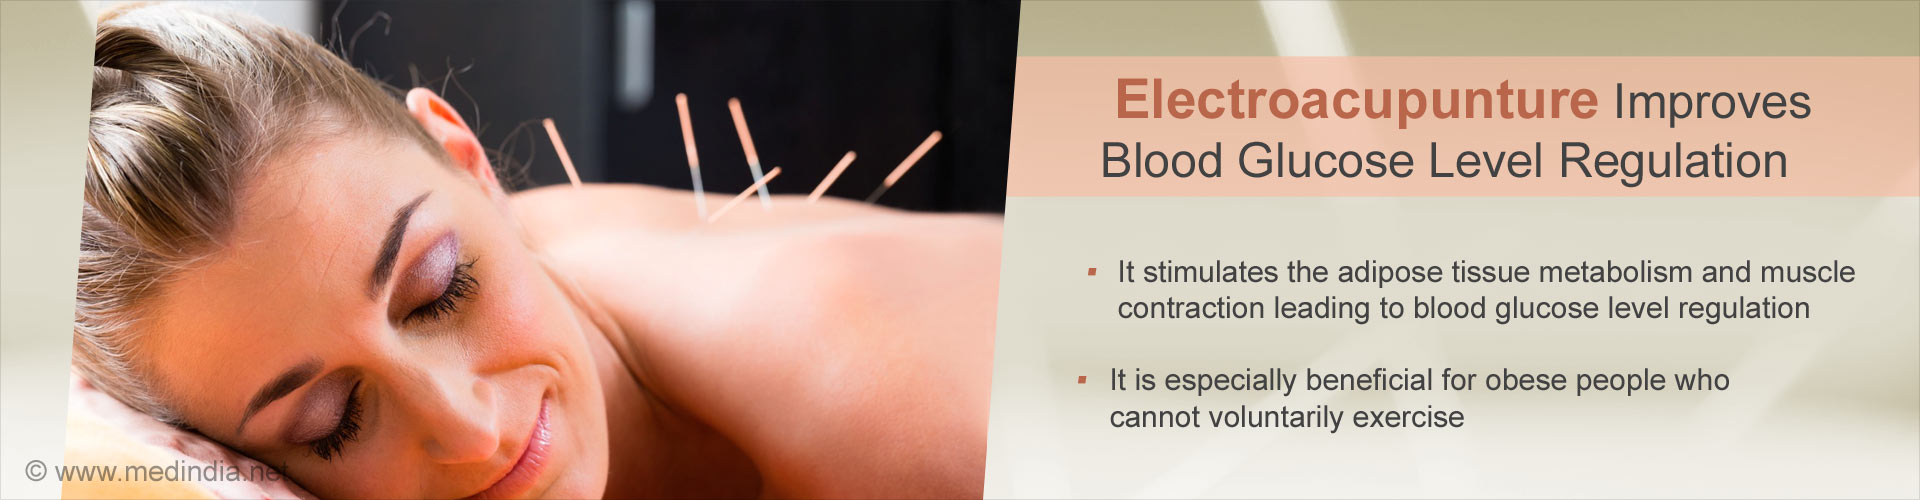 Electro-acupunture improves blood glucose level regulation